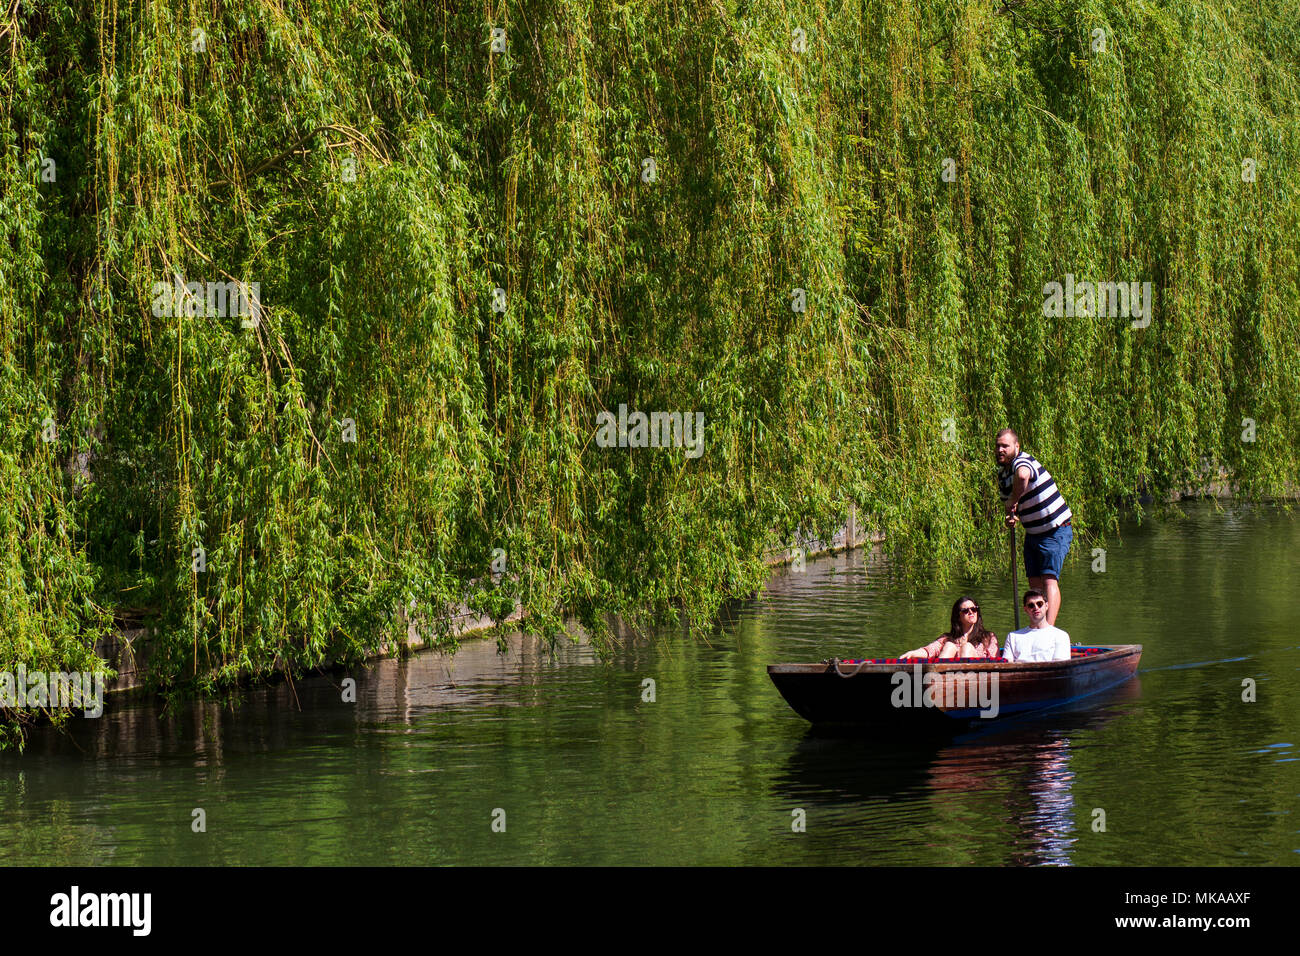 Cambridge, UK. 7th May, 2018. Tourists enjoy the bank holiday sunshine along the River Cam in Cambridge, England. CamNews / Alamy Live News - Stock Image